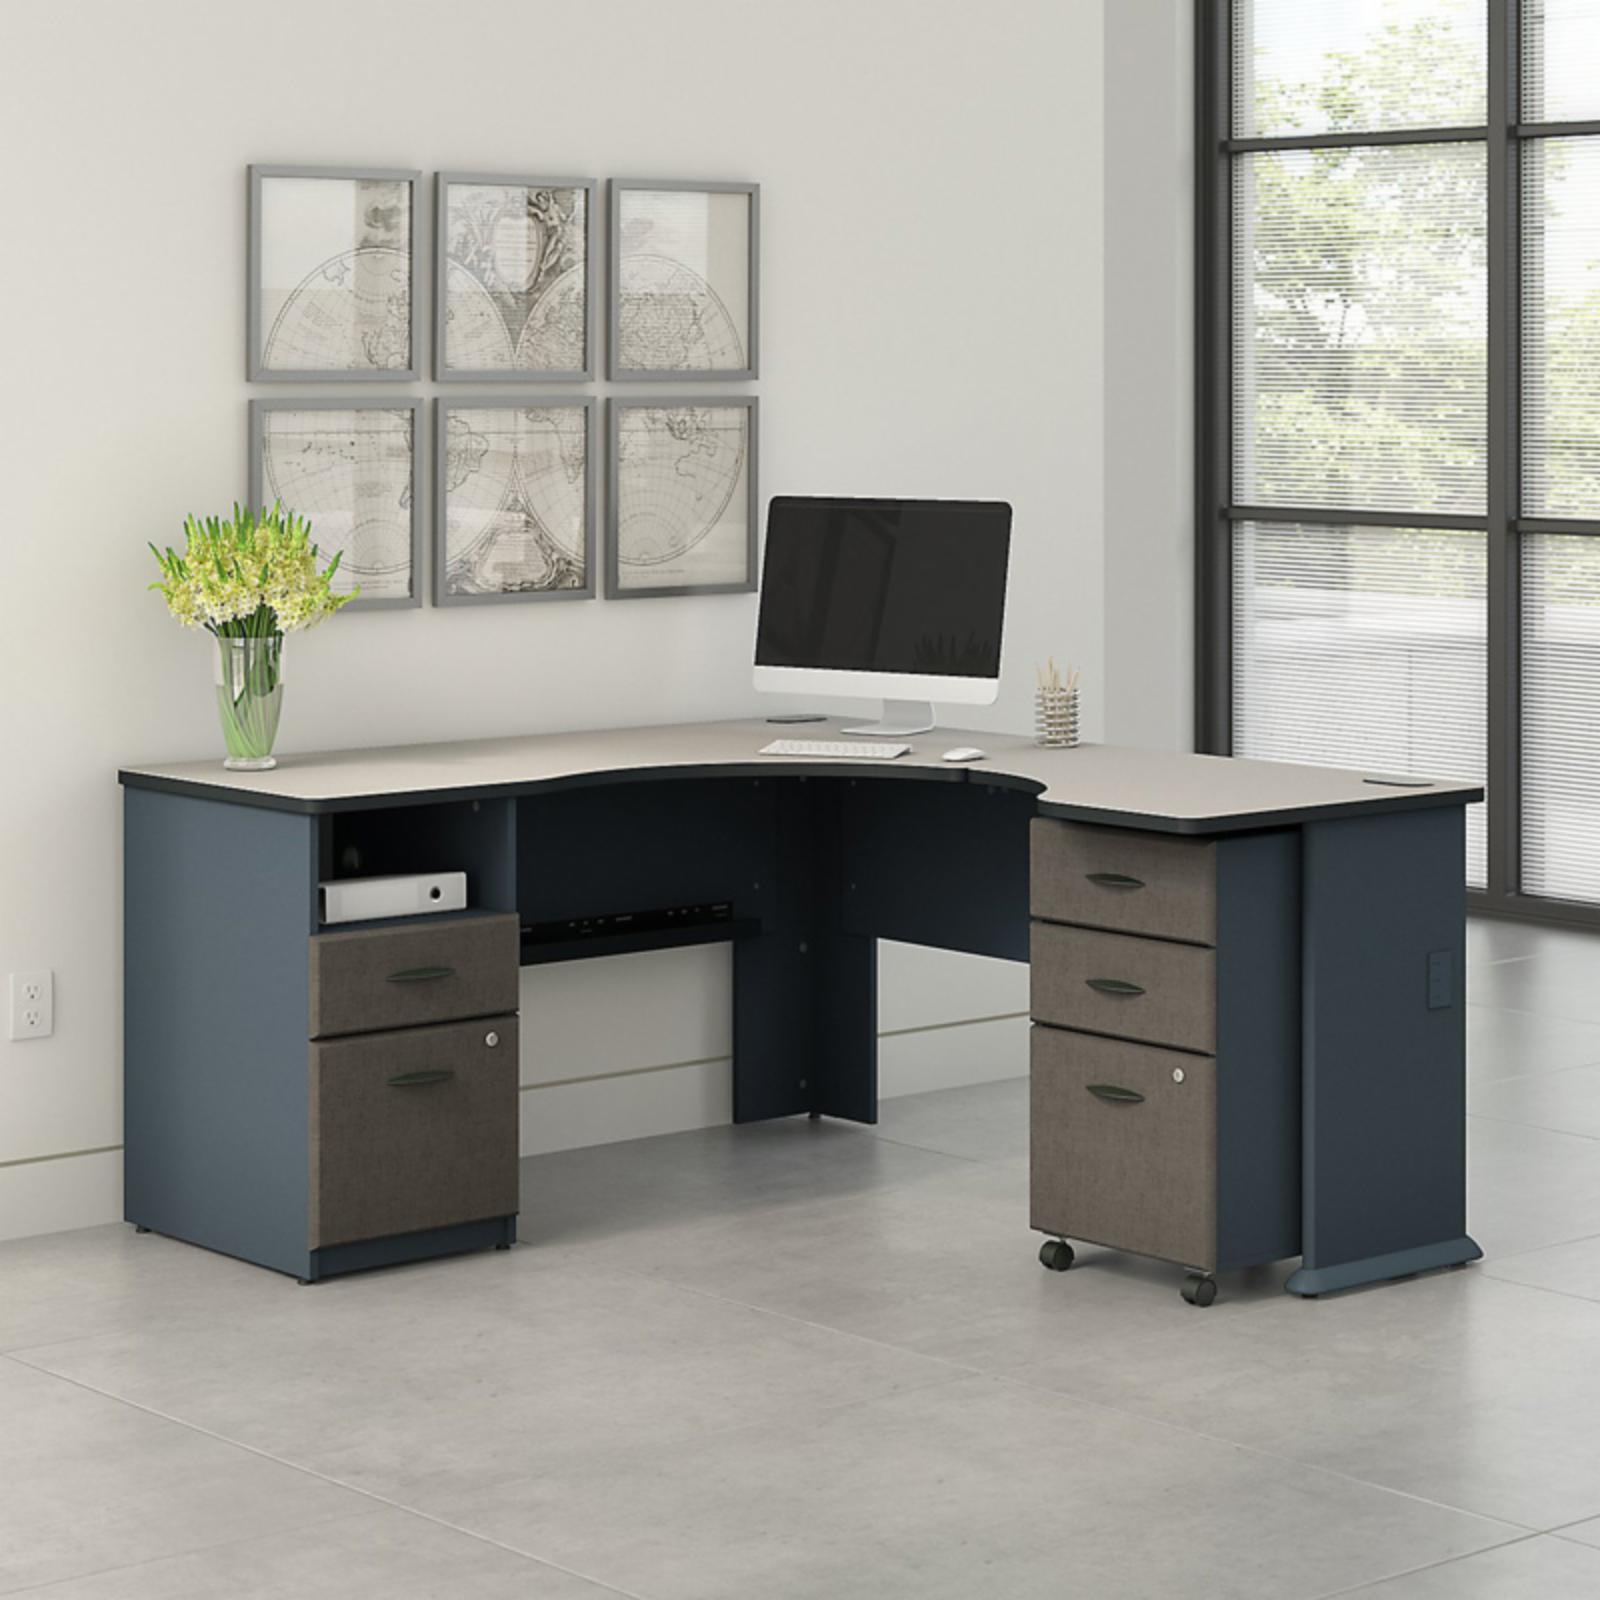 Office Connect Access L Shaped Corner Desk with Pedestal and Mobile Pedestal - ACS002SL